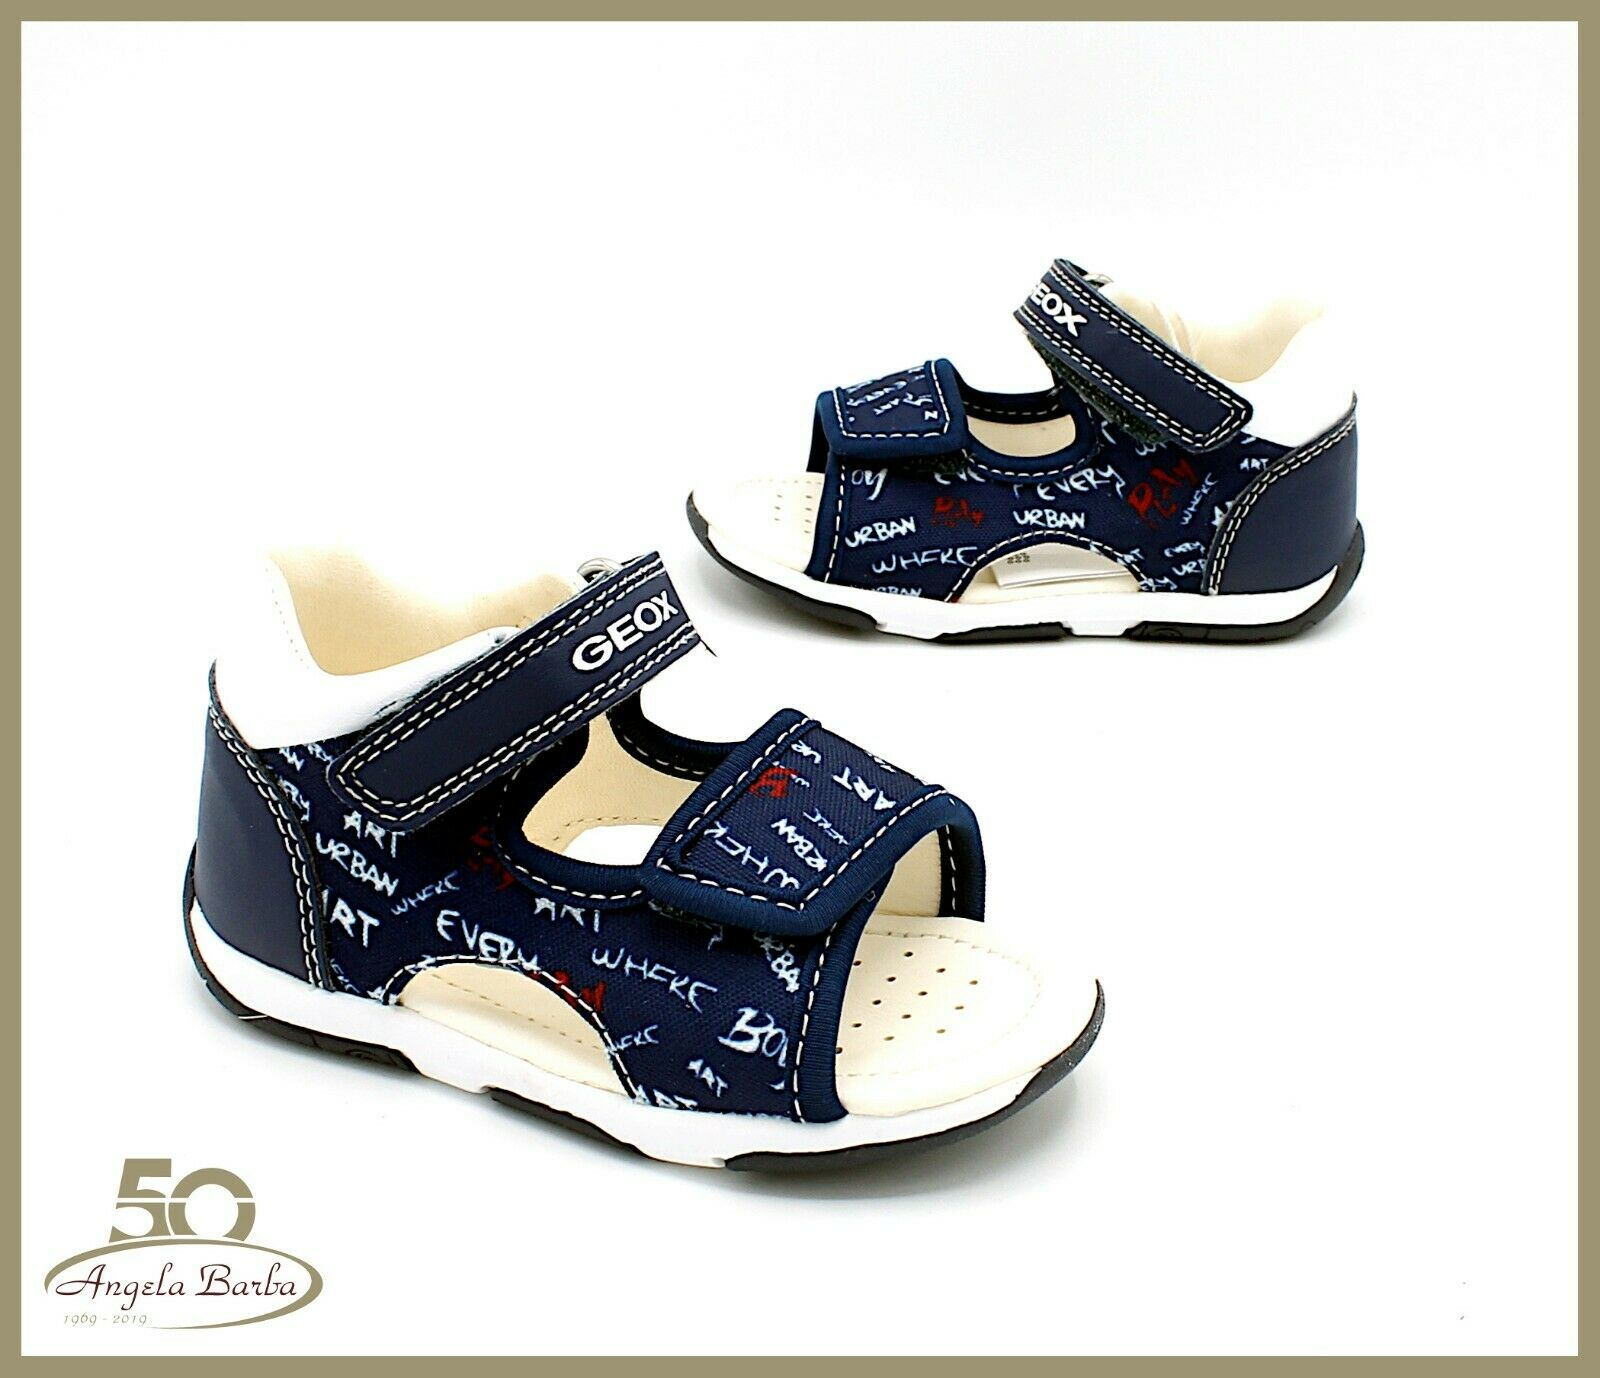 Geox Sandals when He Was a Child for Baby Leather First Steps Shoes &